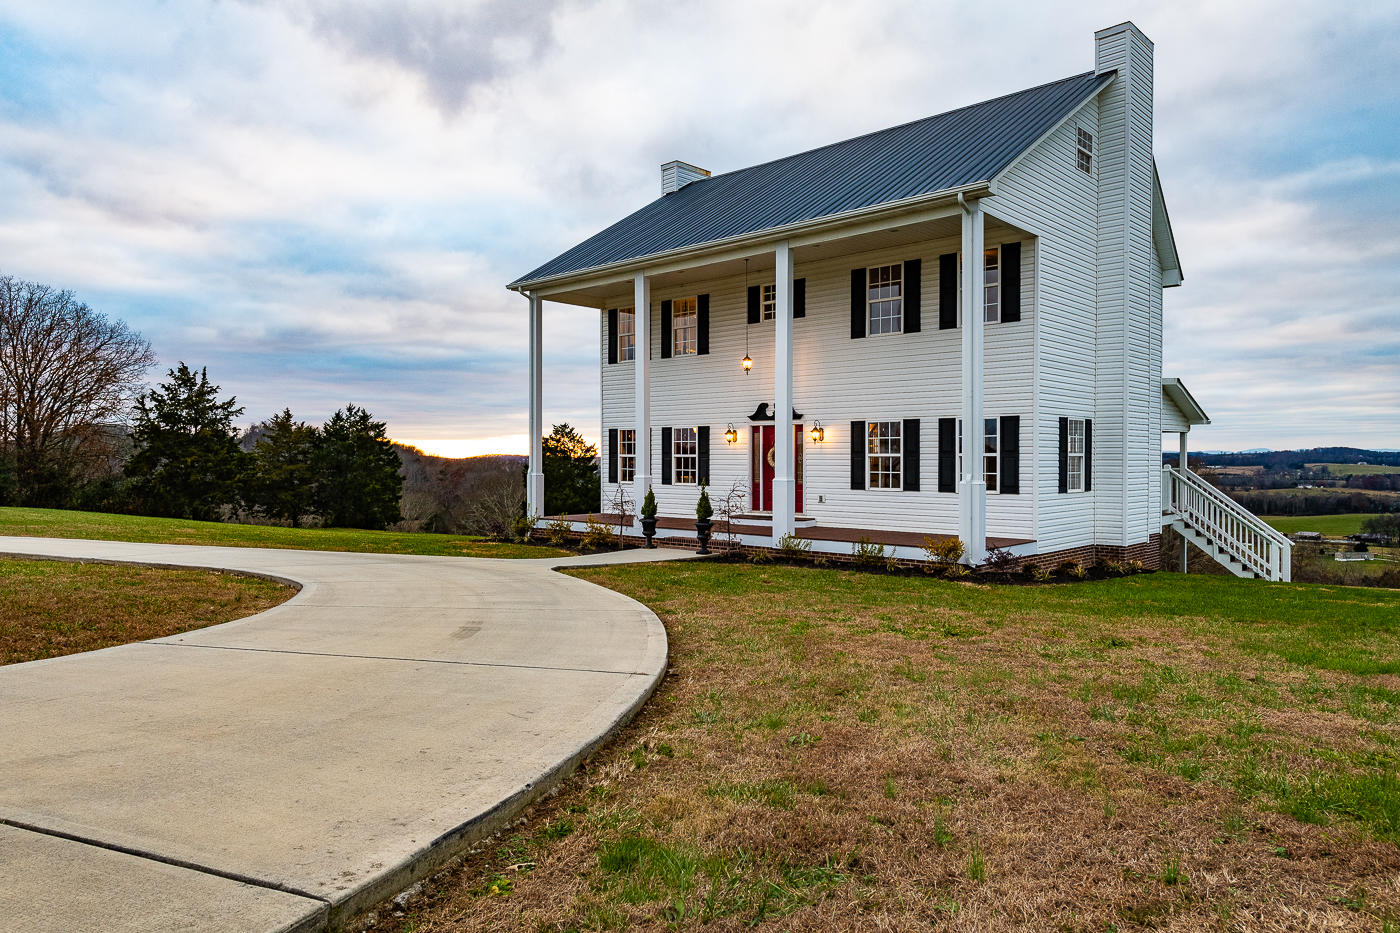 330 High Ridge Rd, Sweetwater, TN 37874